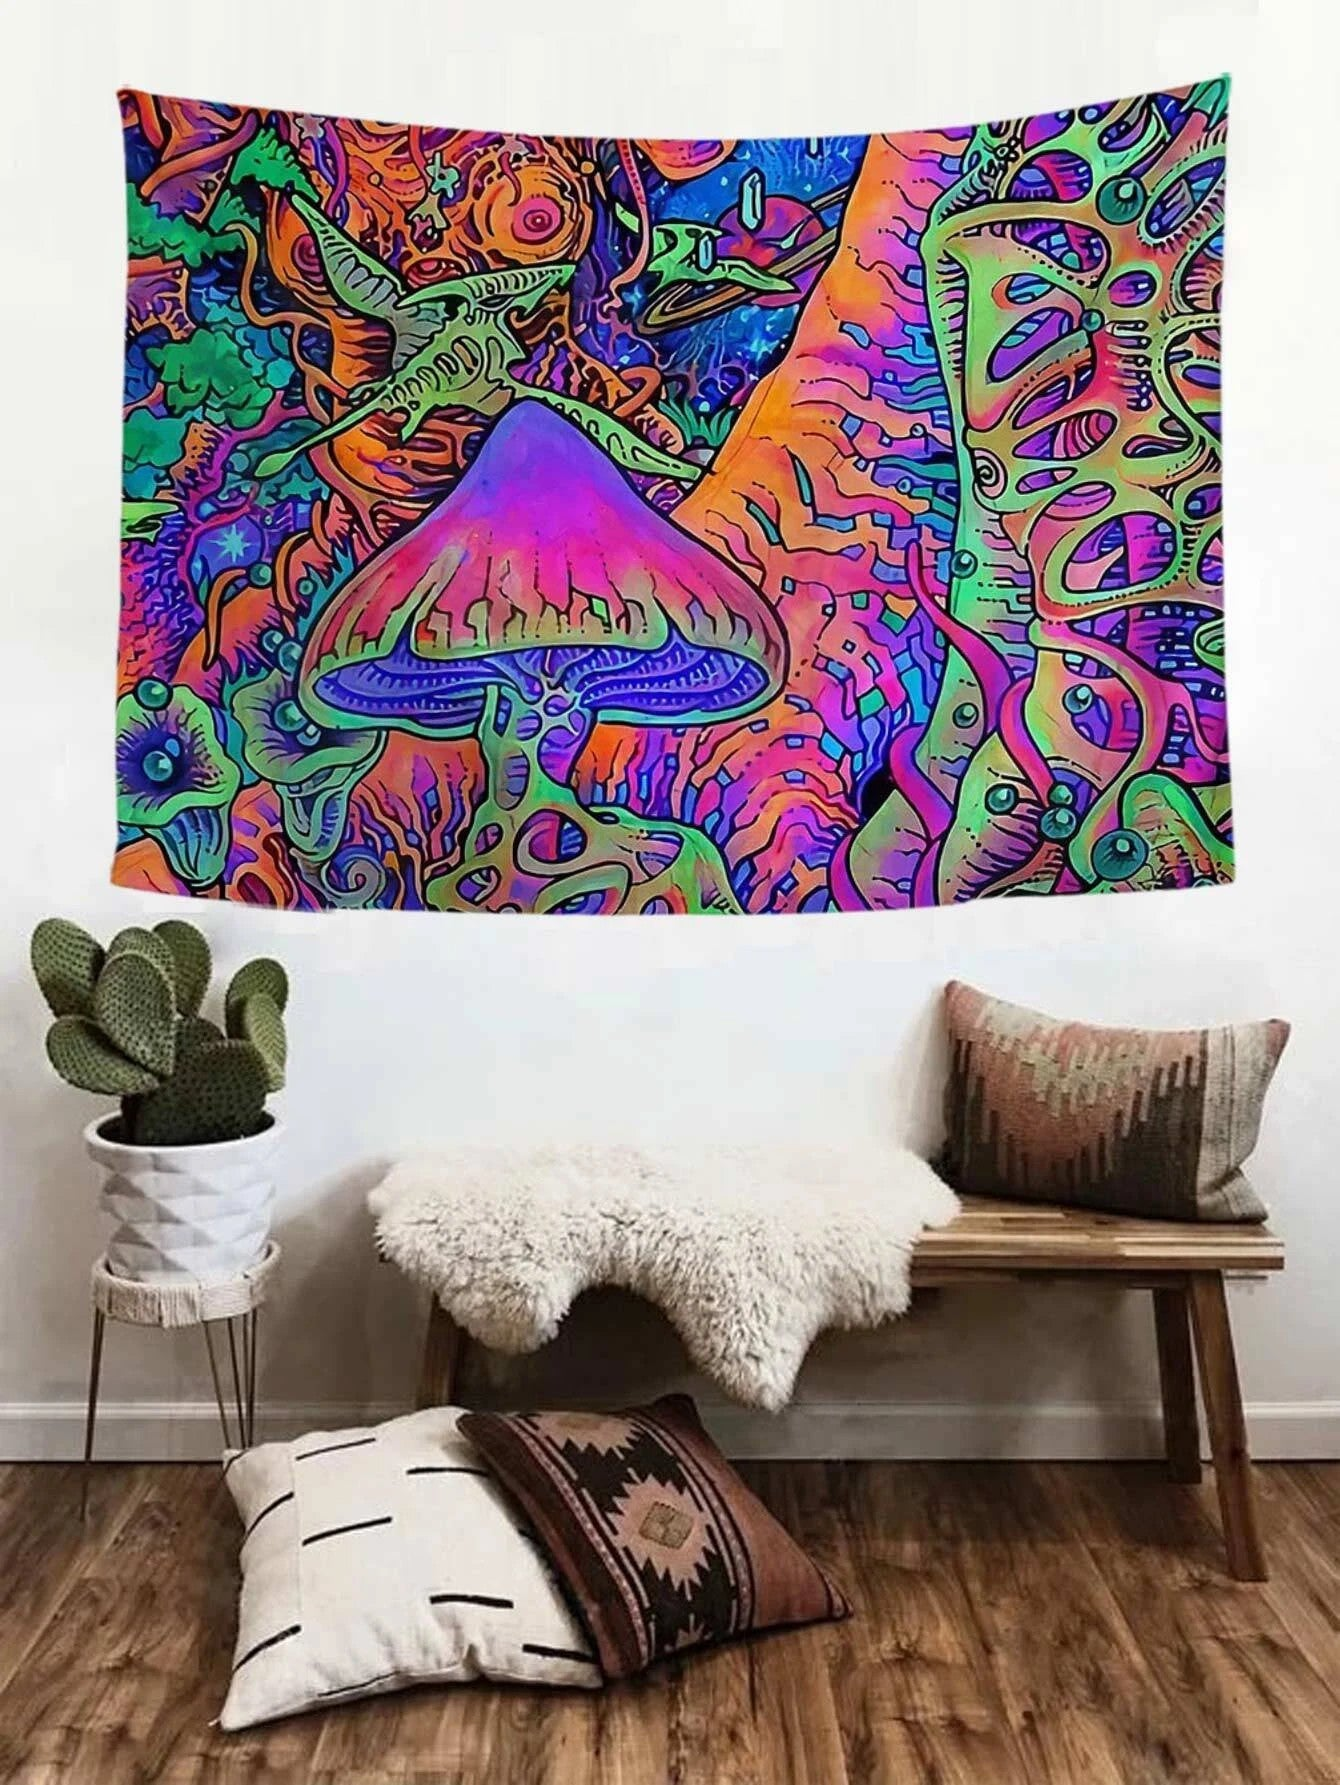 Psychedelic Forest with Pterosaur Dinosaur Trippy Mushroom Tapestry